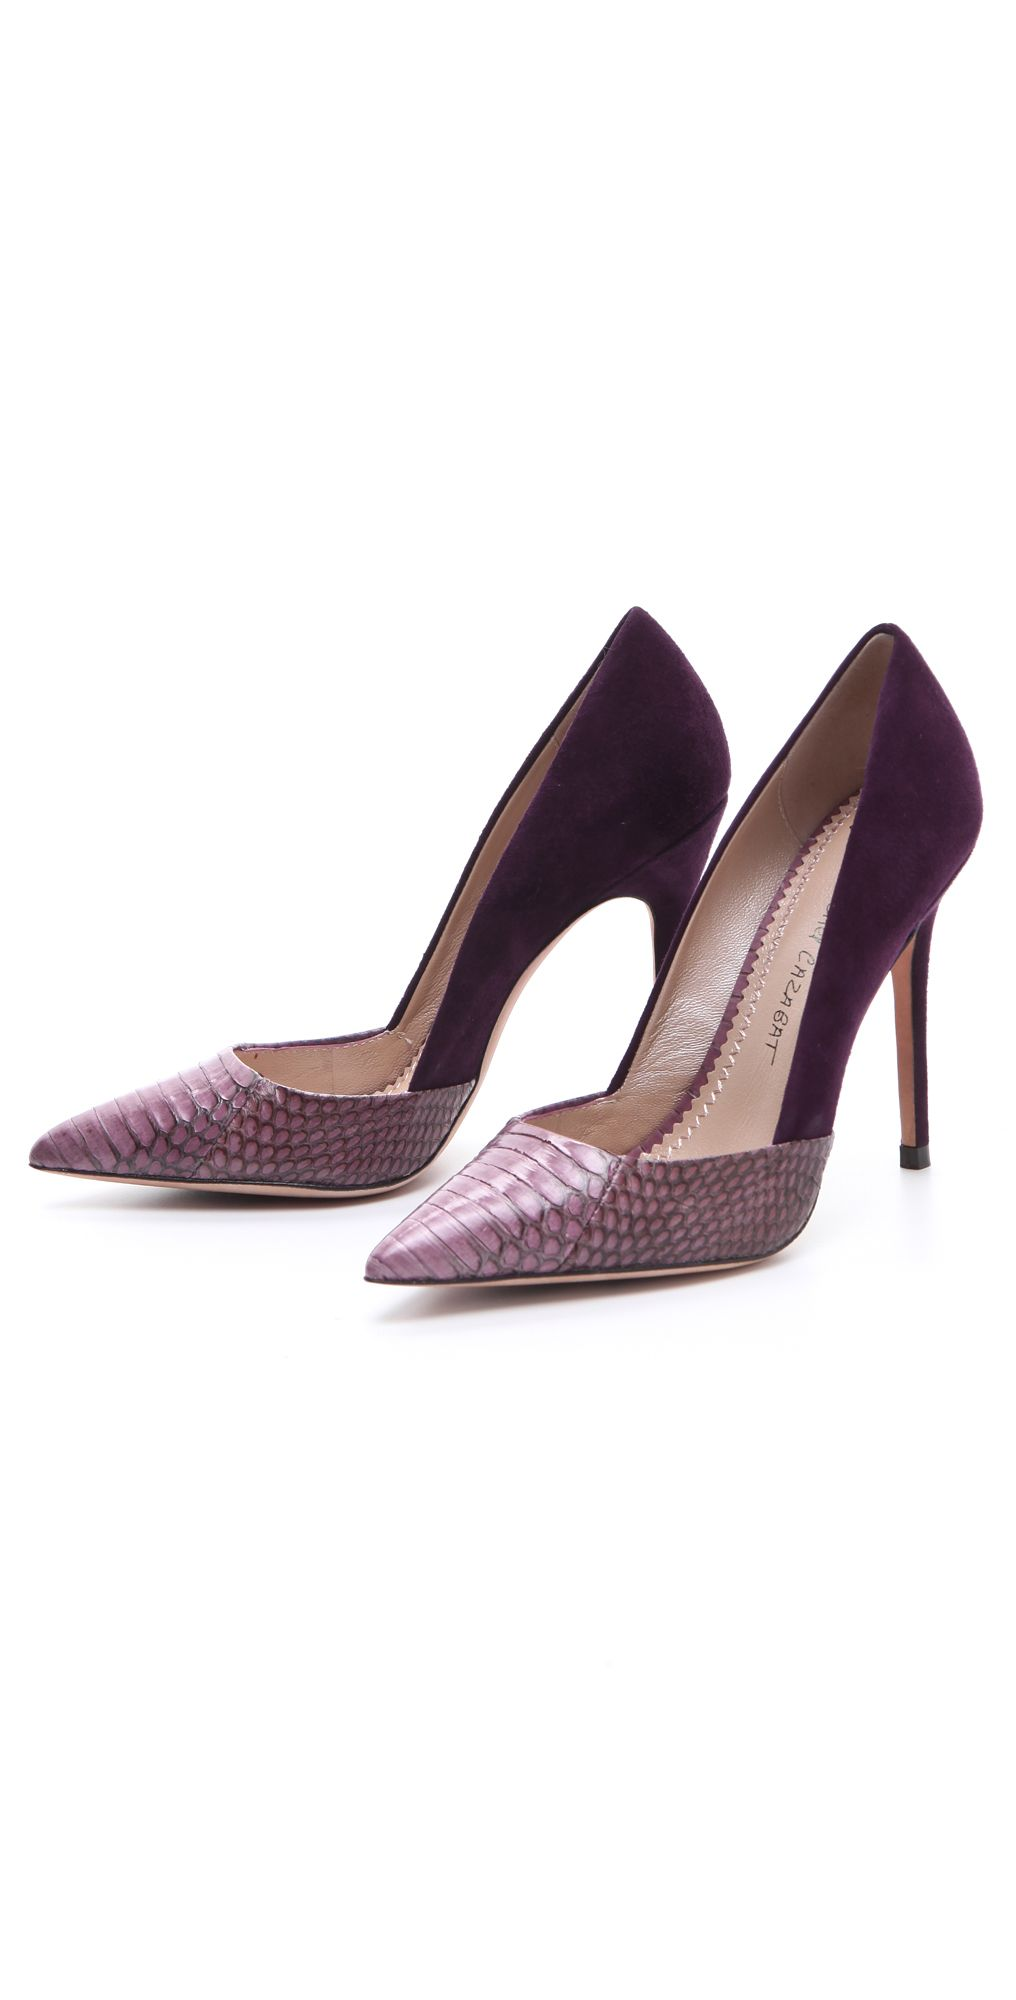 from china Jean-Michel Cazabat Python Peep-Toe Pumps looking for sale online jYAYuXUZ